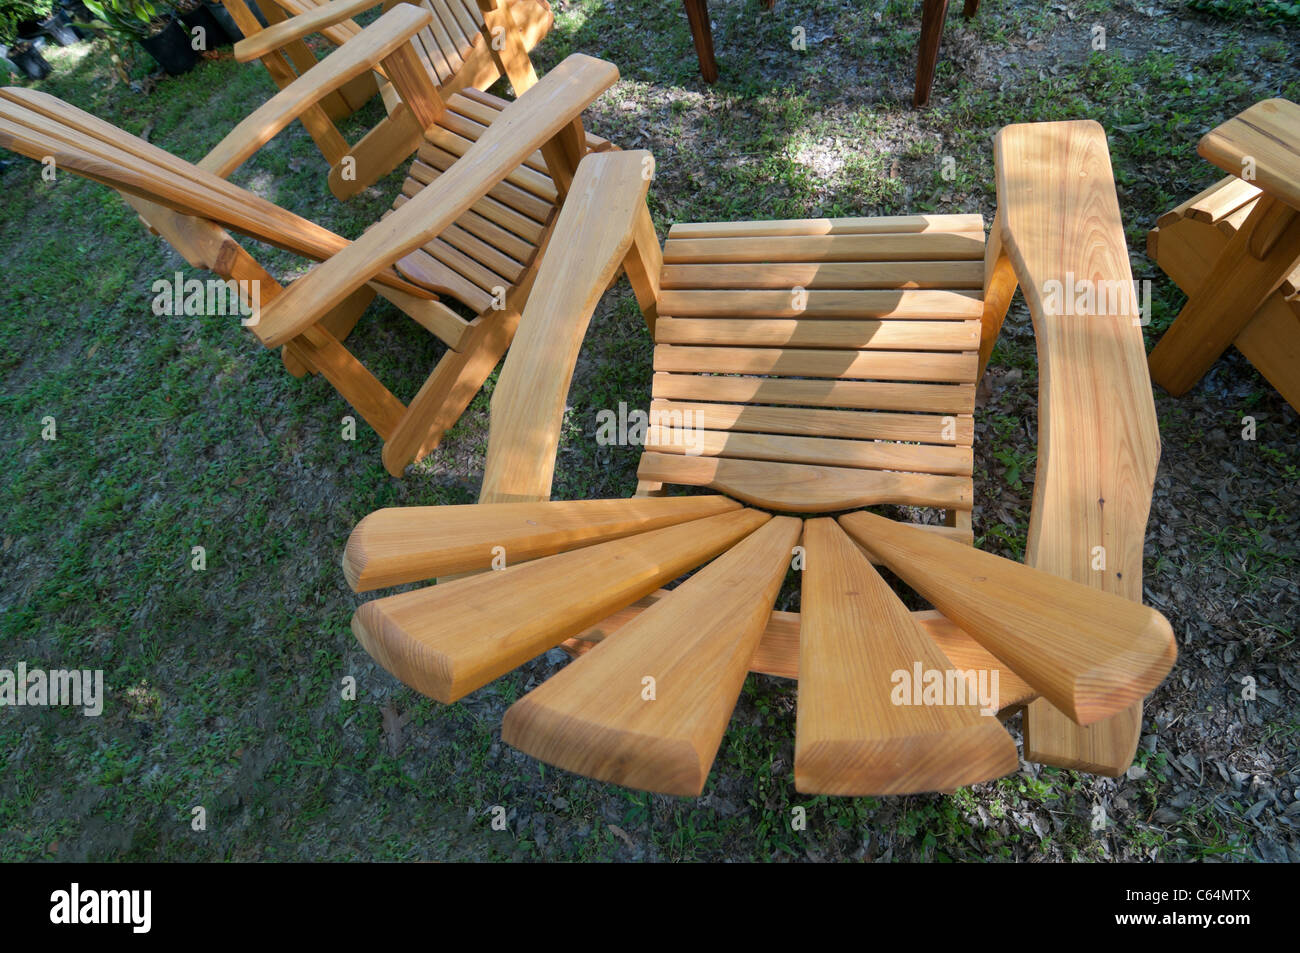 margaritaville chairs for sale low toddlers wooden stock photos and